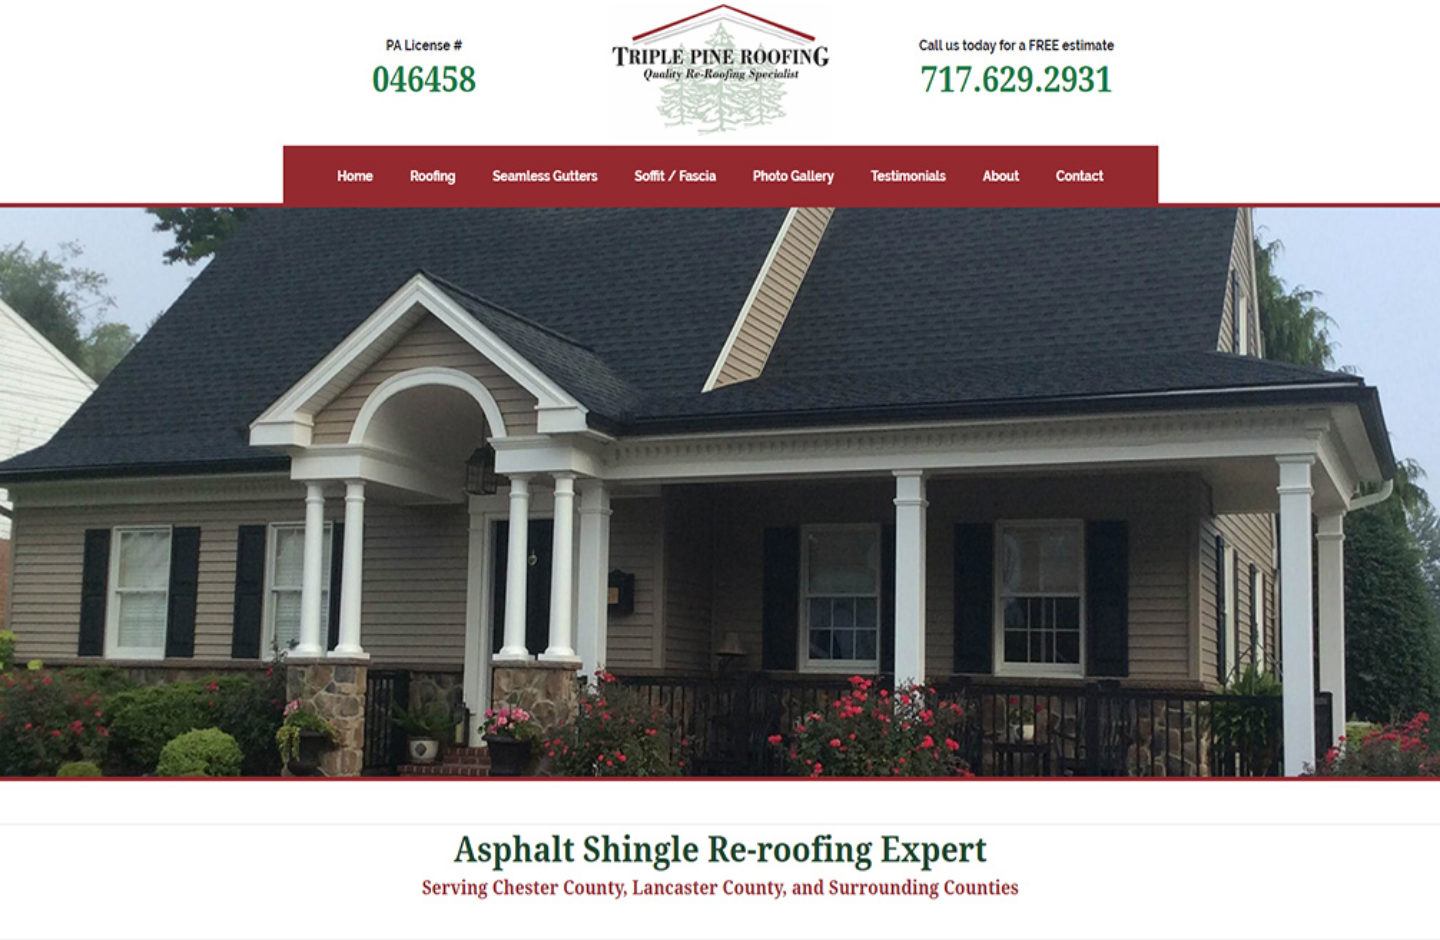 Triple Pine Roofing